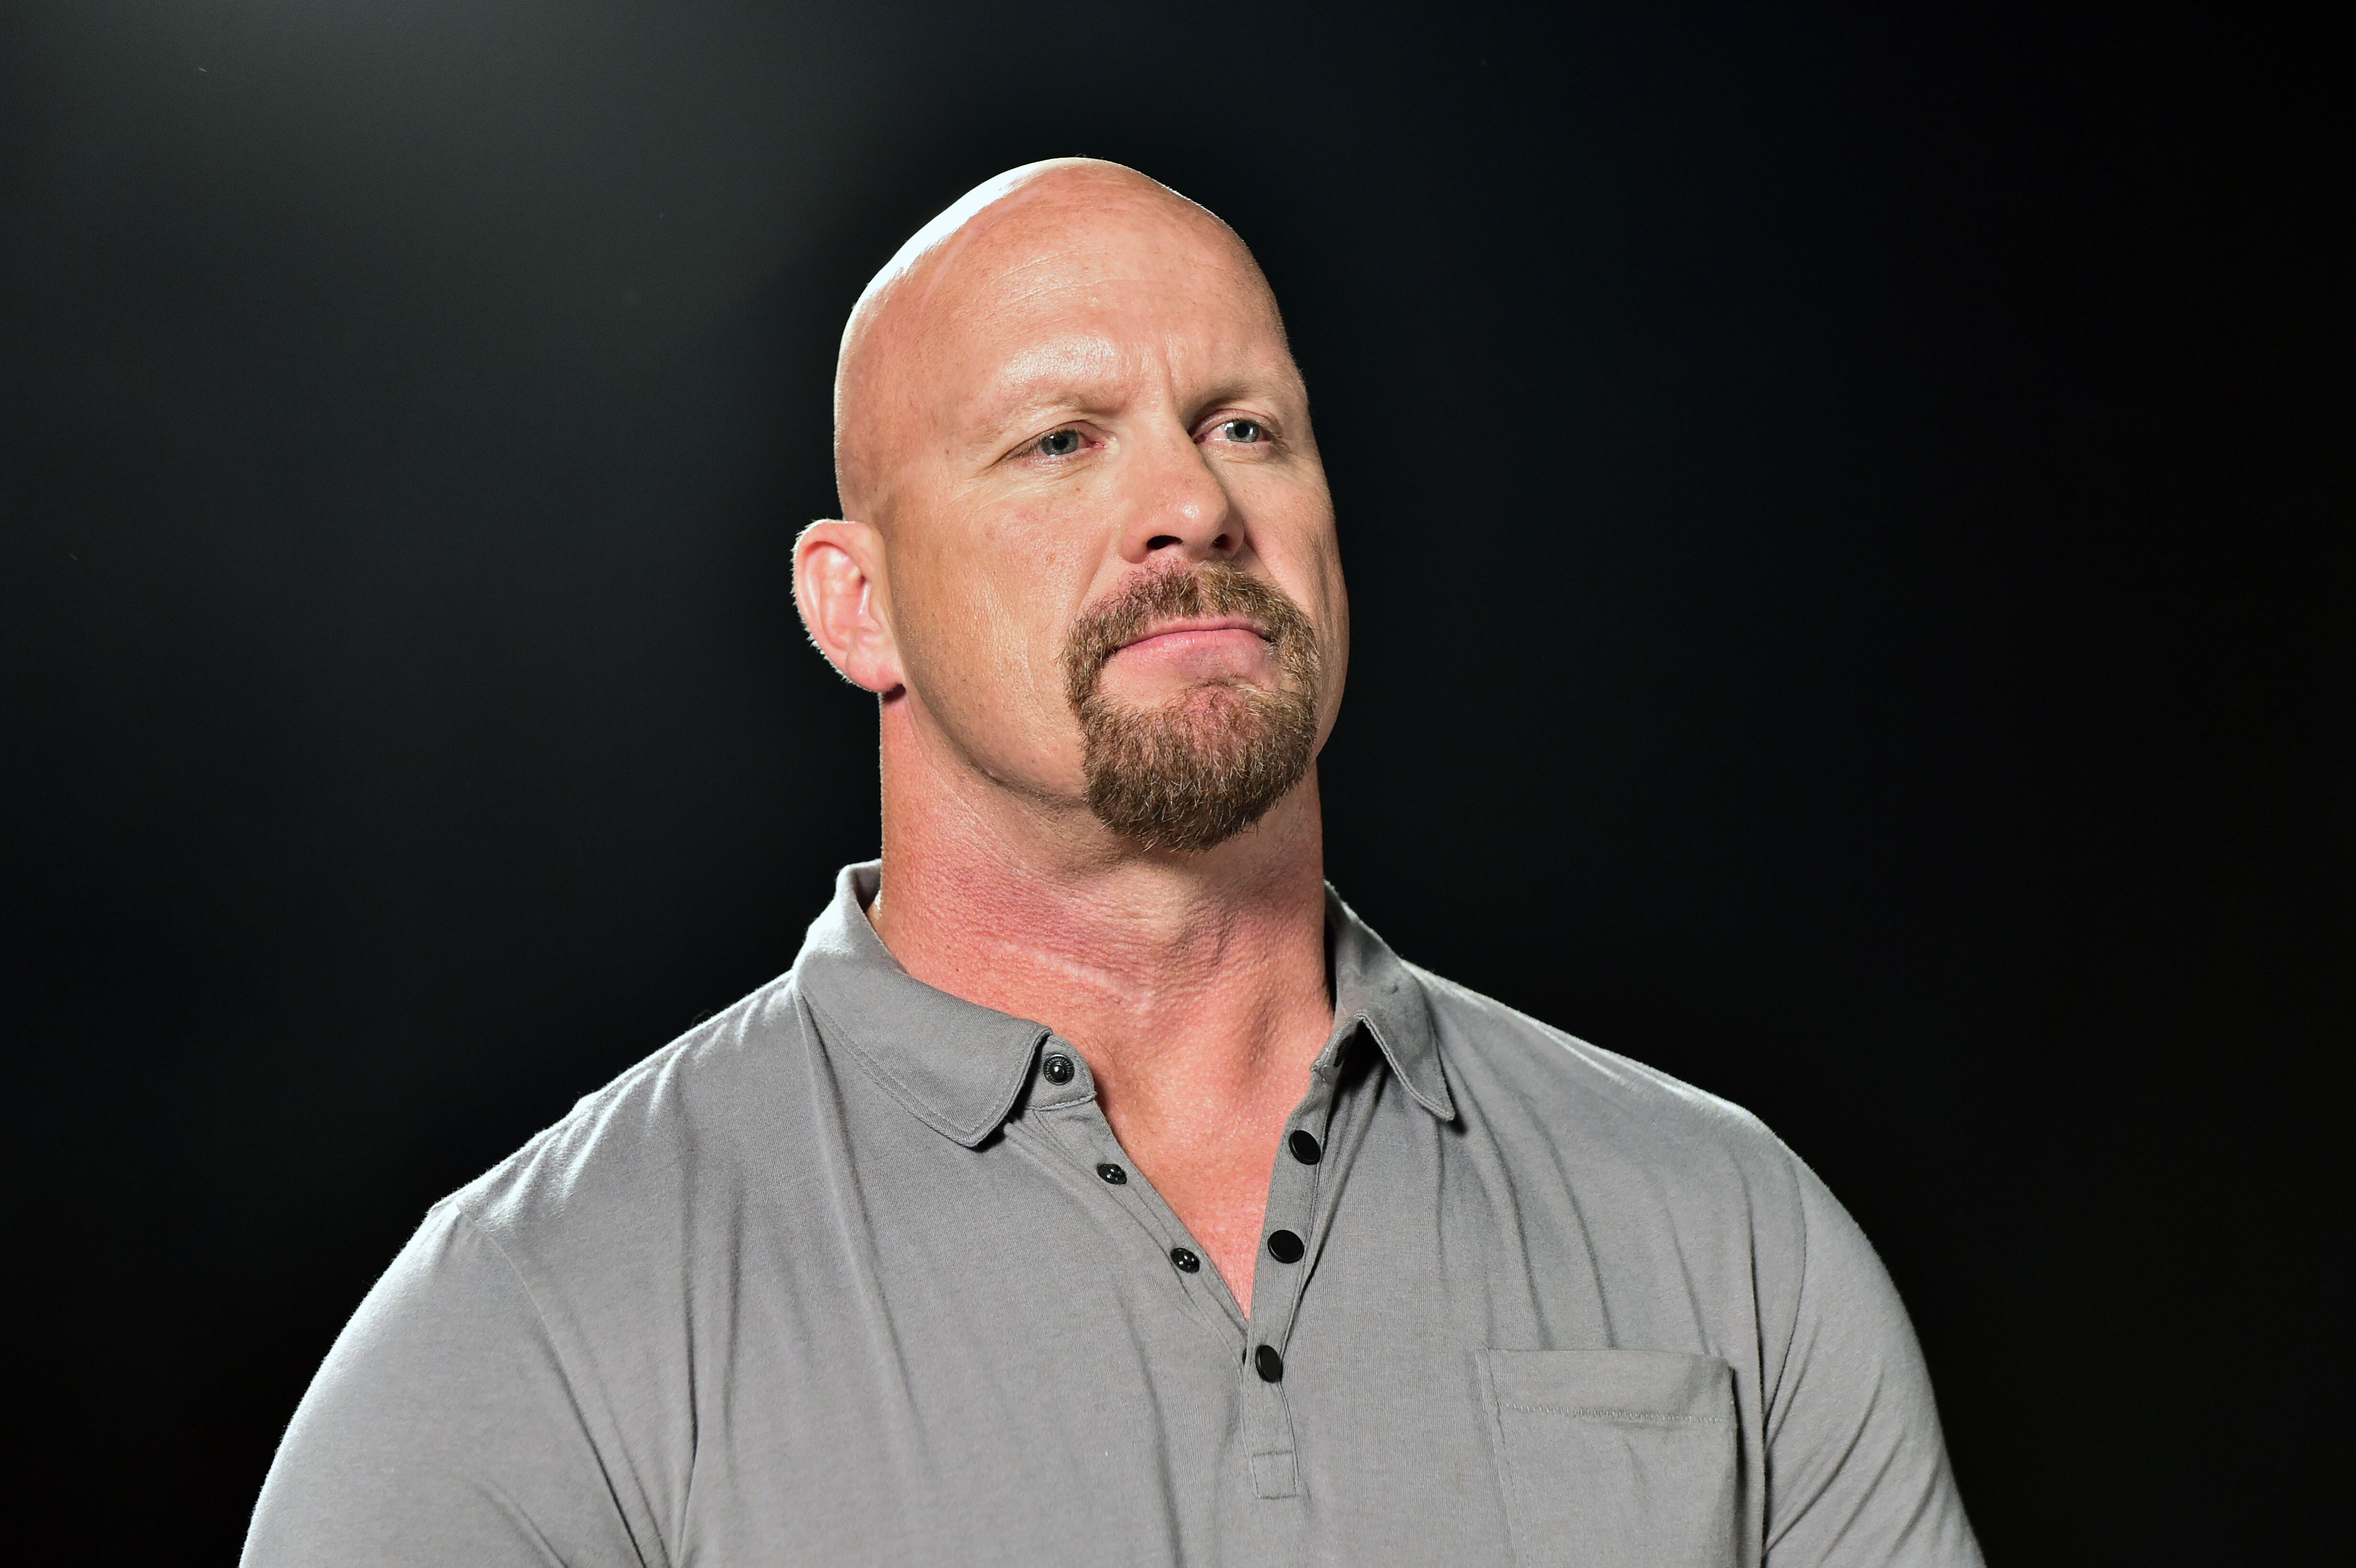 Stone Cold Steve Austin's podcast could be returning to WWE with The Undertaker as a guest